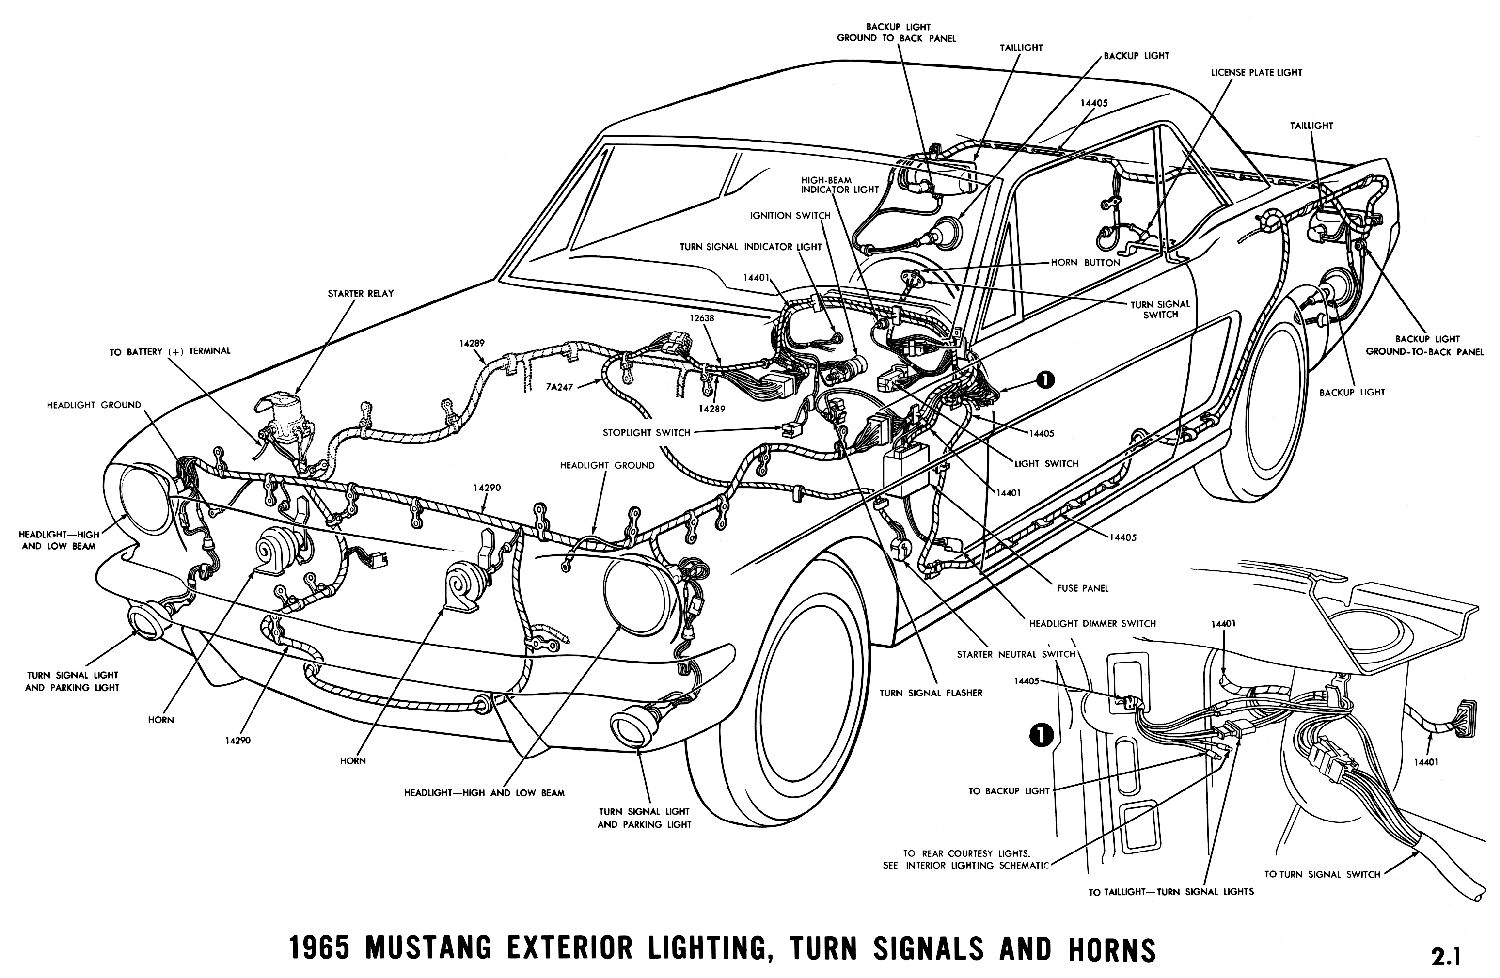 1965 Mustang Wiring Diagrams Average Joe Restoration October 2012 Mercedes Fuse Box Diagram 1965d